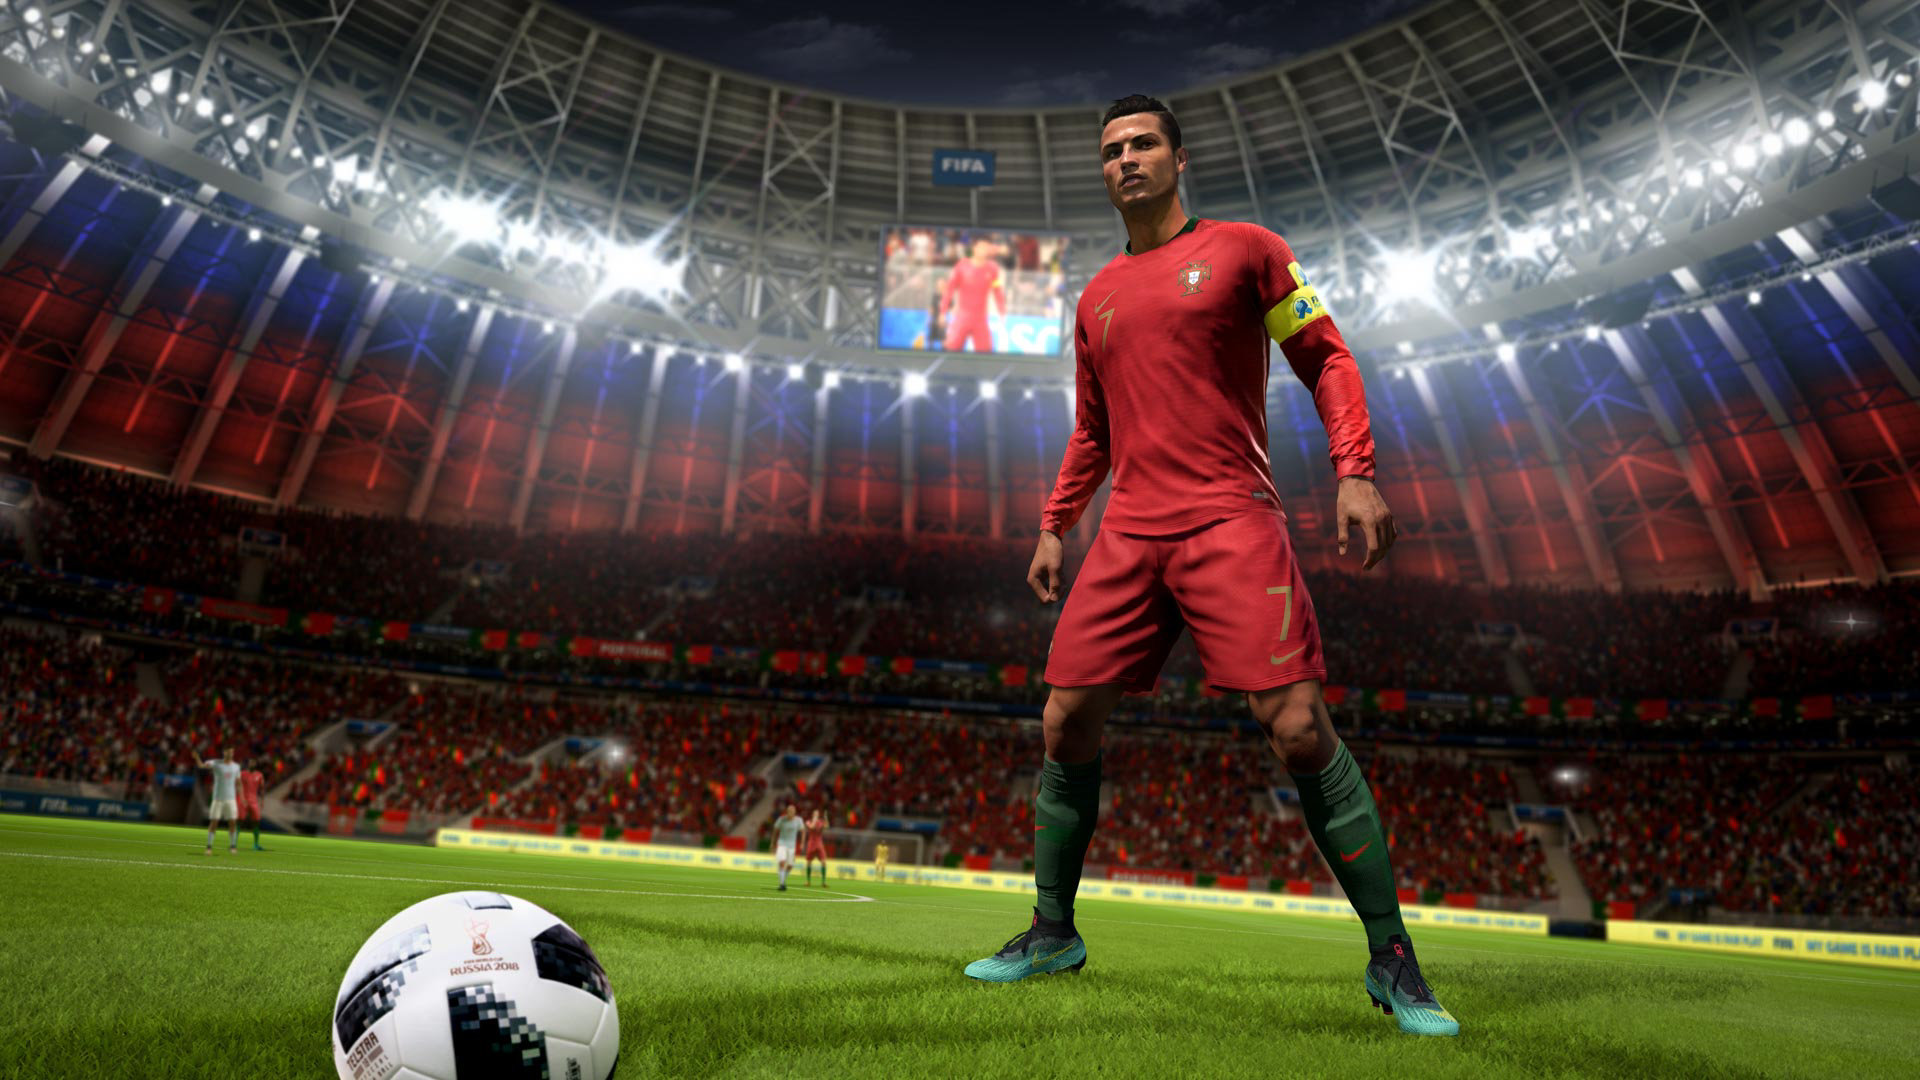 fifa 18 iso file download ppsspp